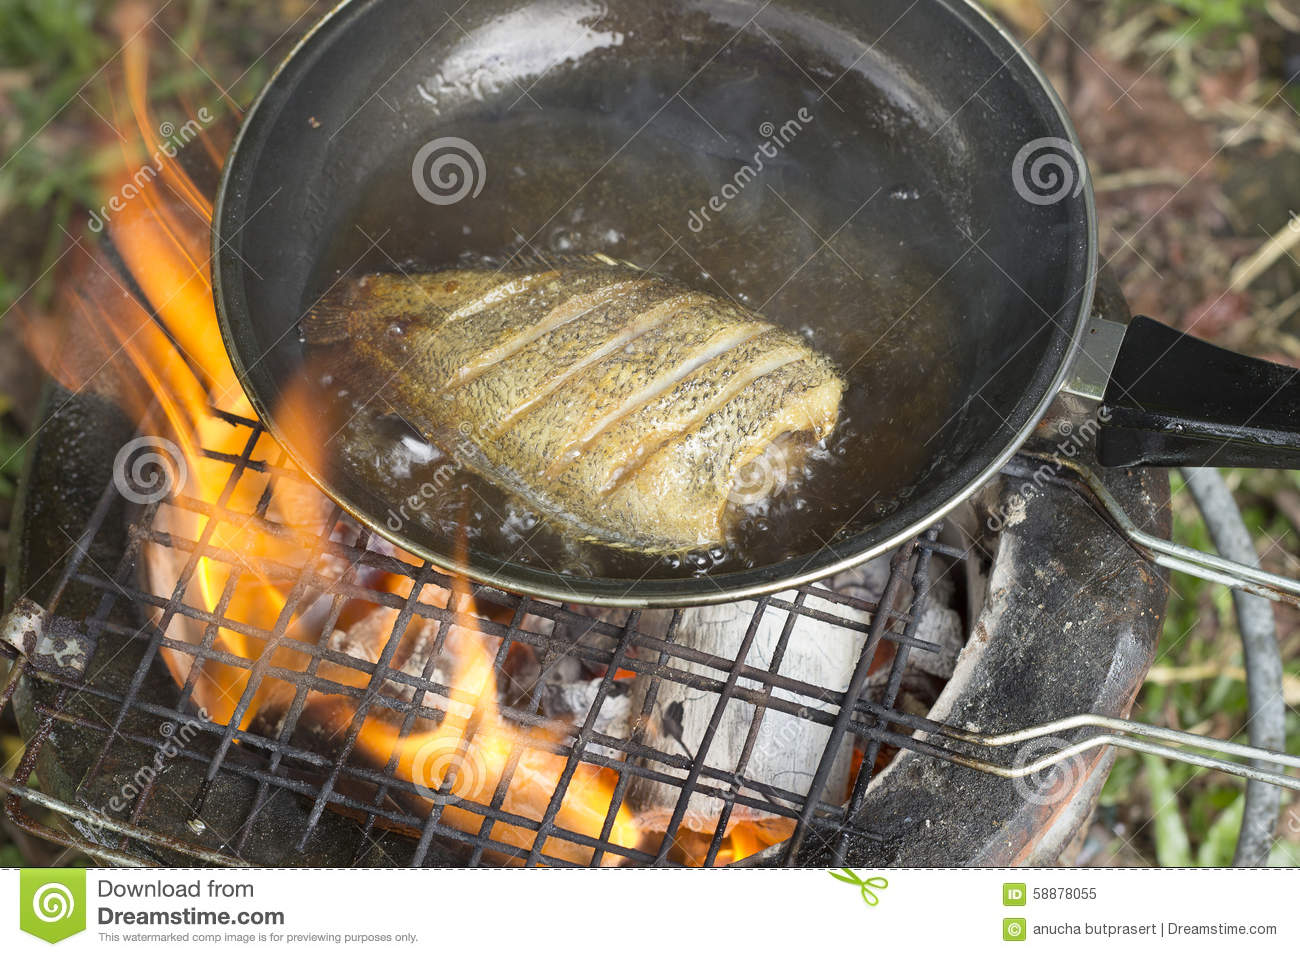 Cooking fry the fish on camping in the forest stock image for Oil for frying fish